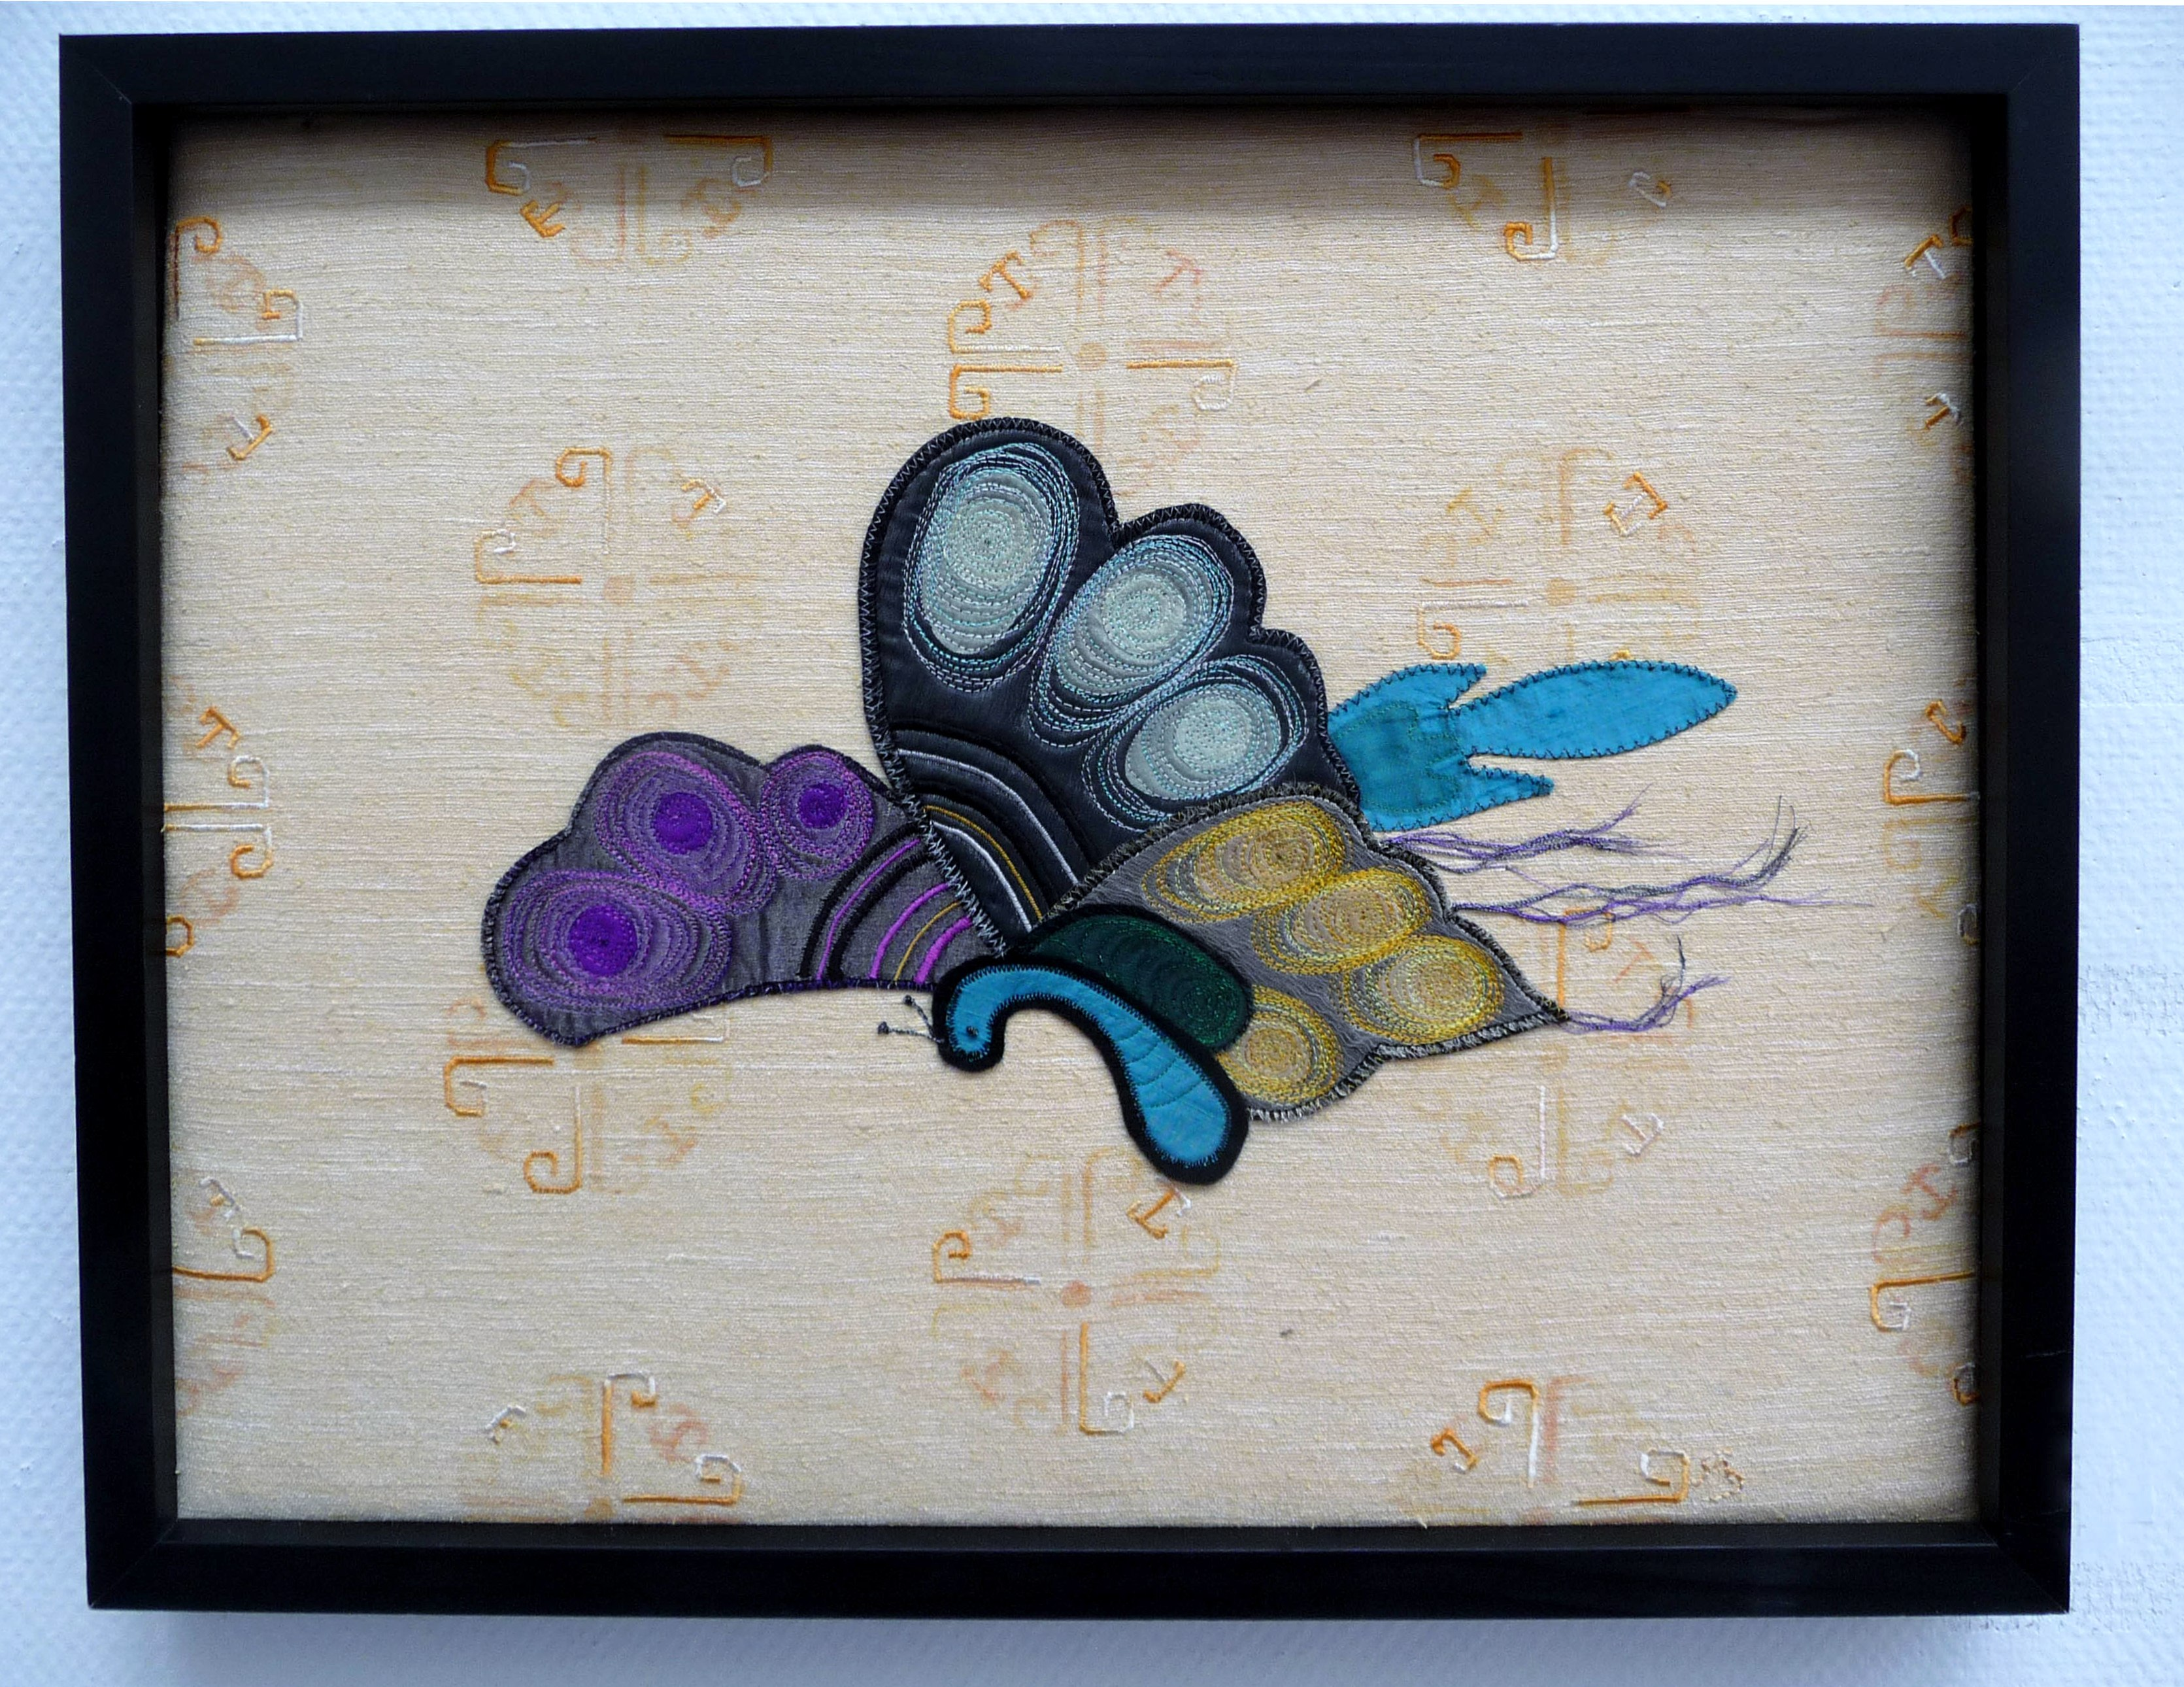 STITCHED IN FLIGHT by Anne Stark, machine embroidery on layered fabrics